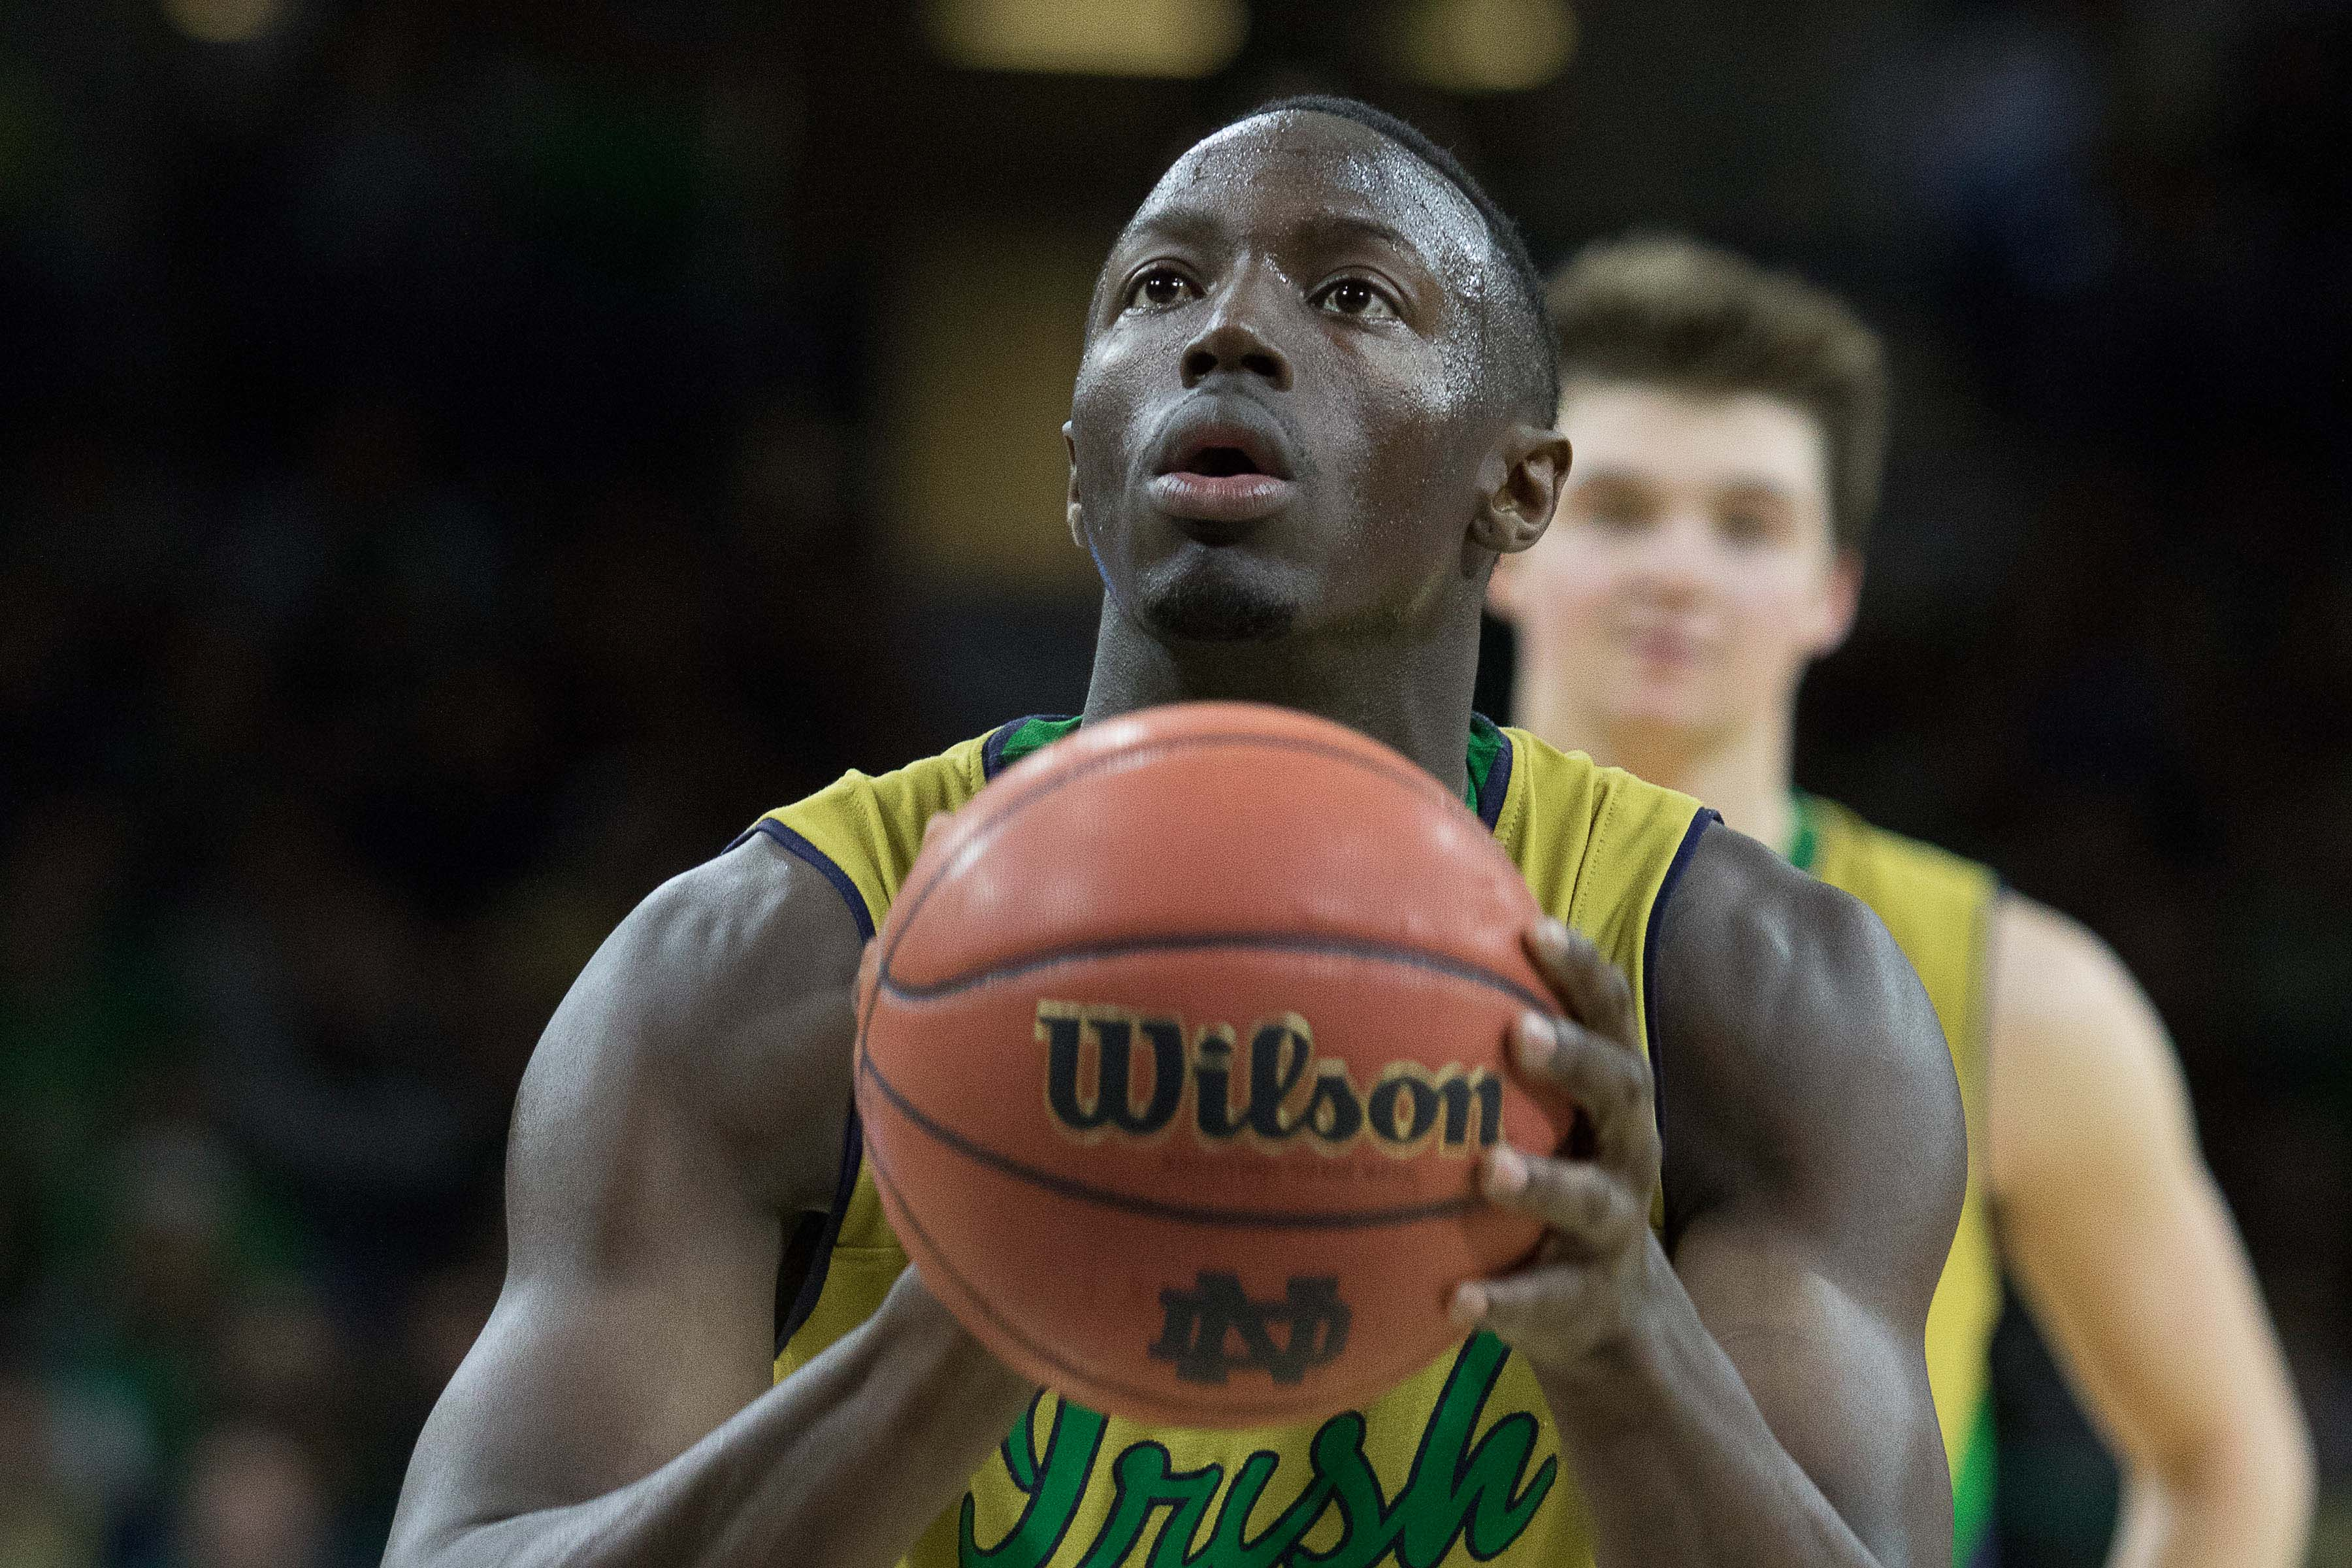 Can Jerian Grant keep Notre Dame's magical season alive?